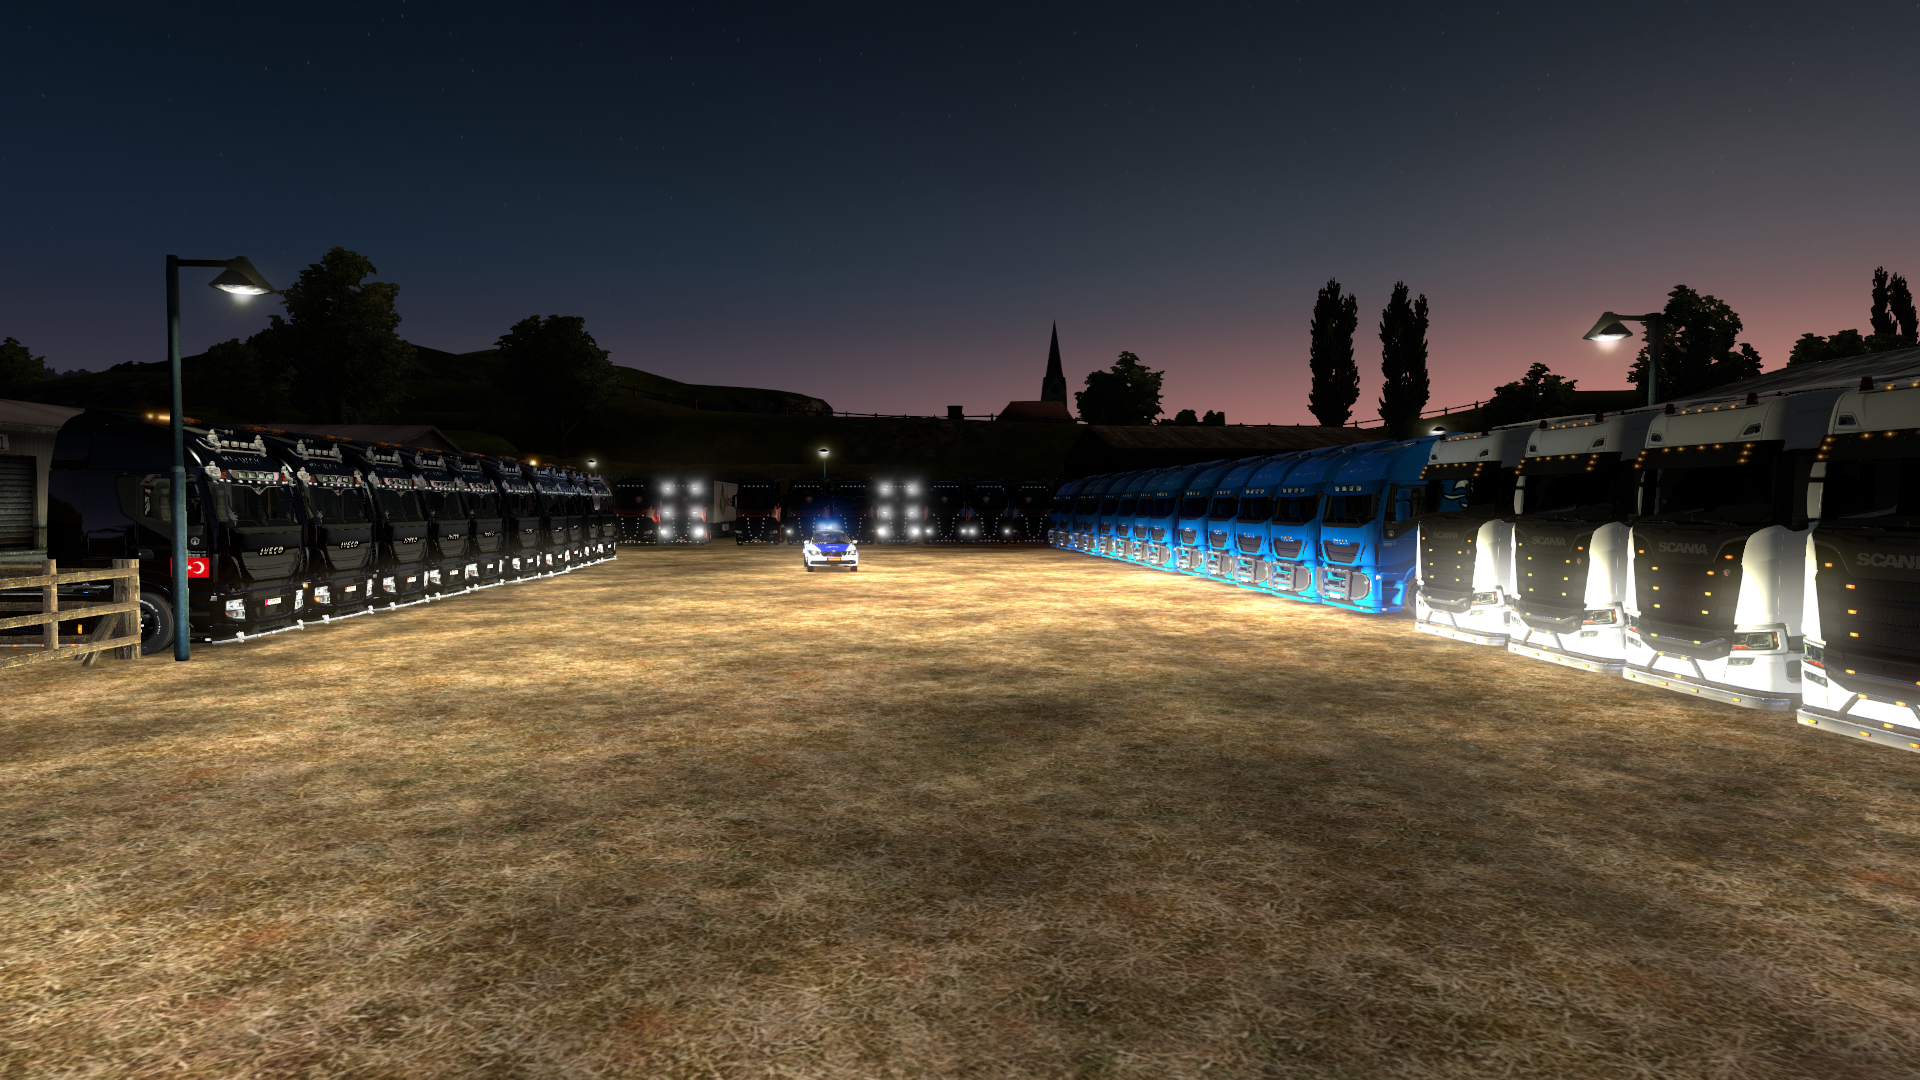 ets2_20190427_214330_00.png